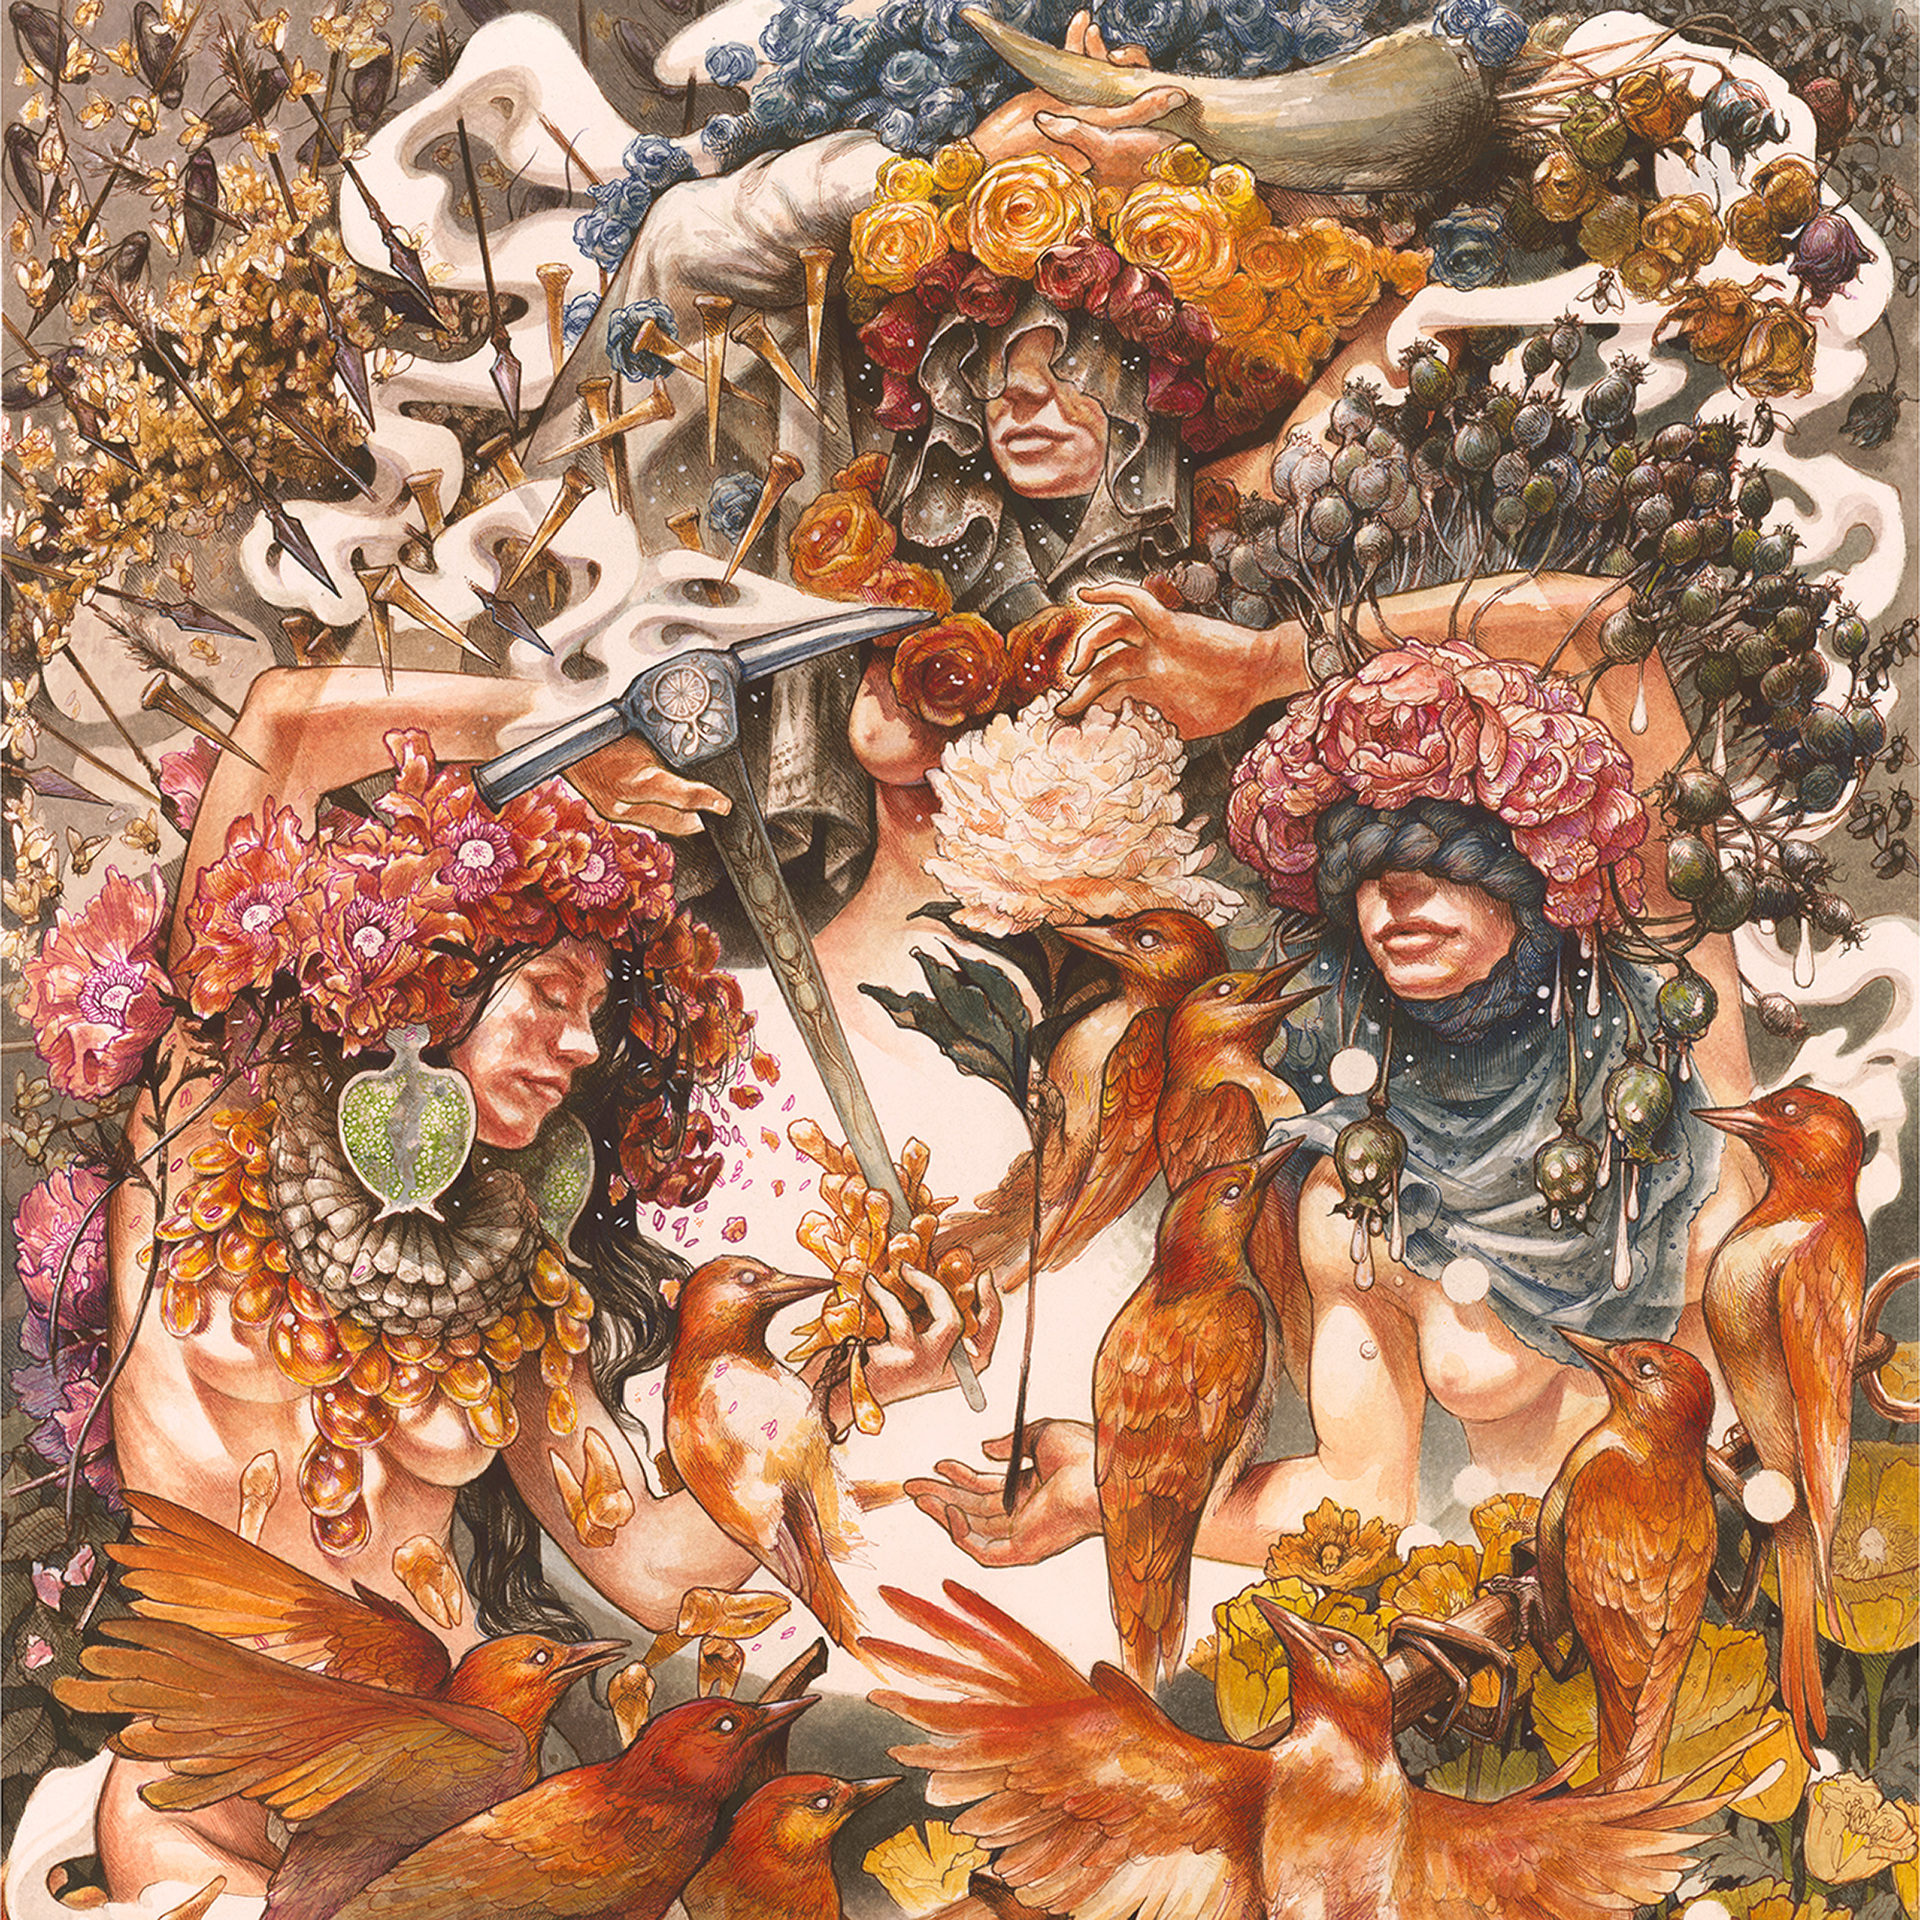 Baroness new album Gold & Grey